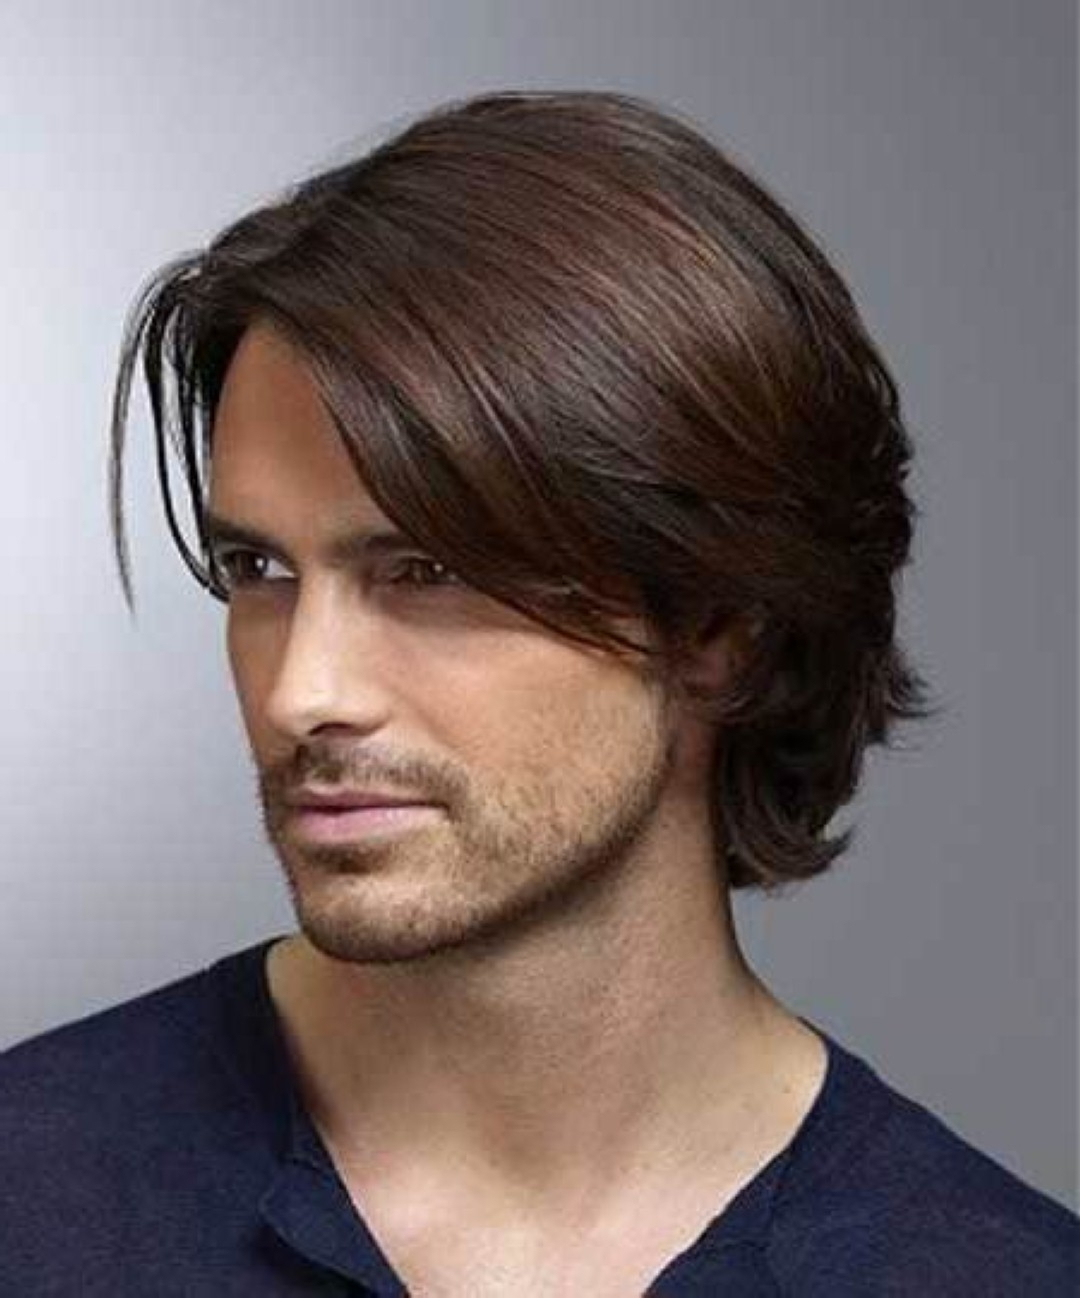 Medium Haircuts For Men   Fashions Style And Hairstyle For Short To Medium Hairstyles For Men (View 10 of 25)